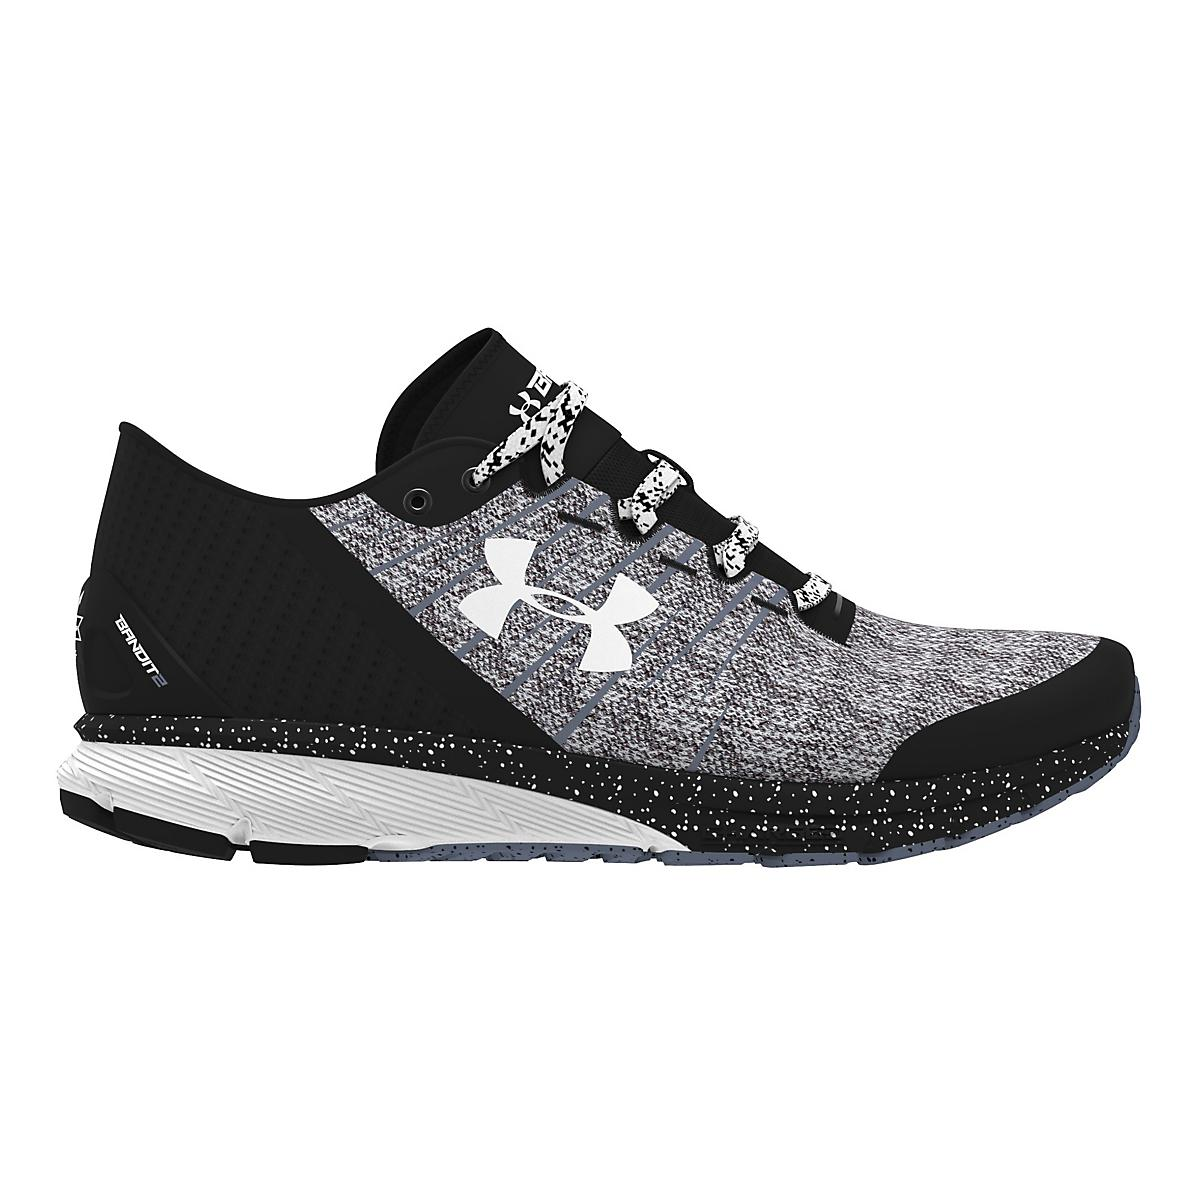 Womens Under Armour Charged Bandit 2 Running Shoe at Road Runner Sports 47980237d